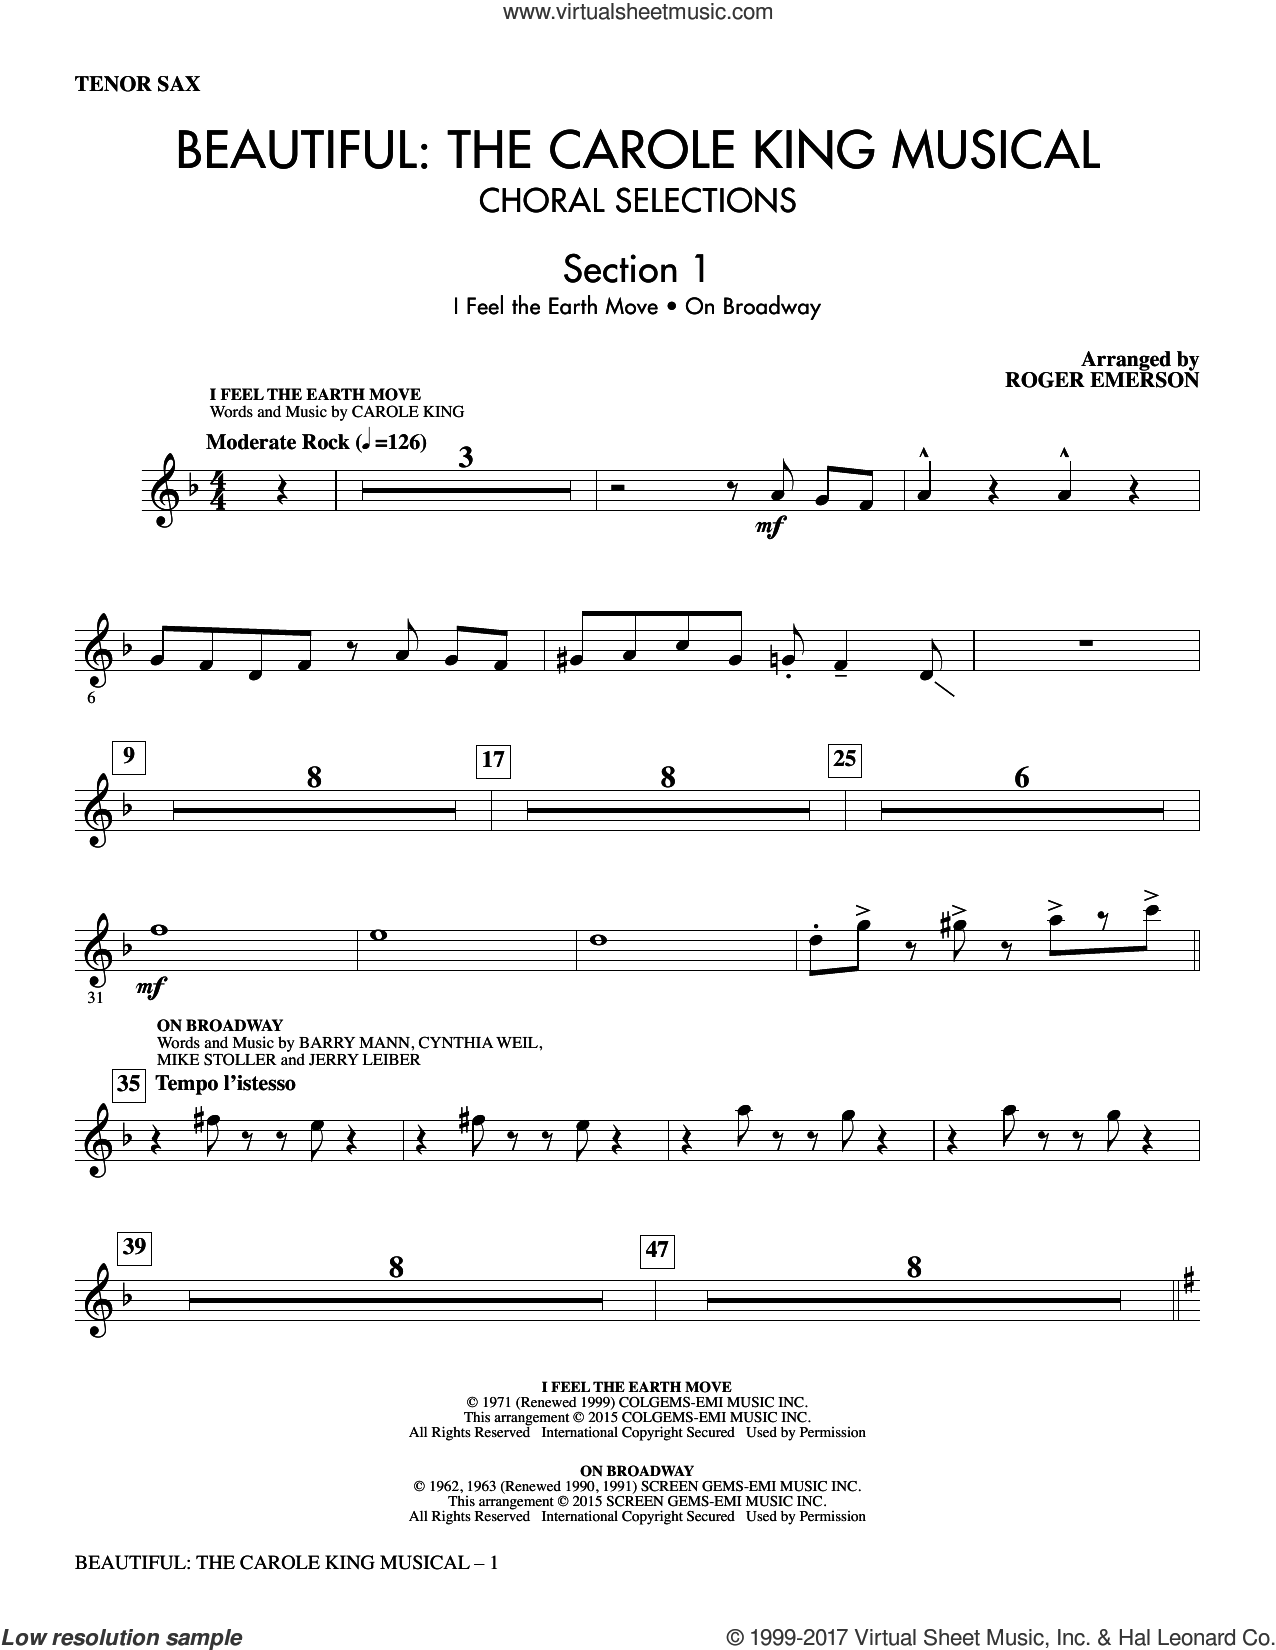 Beautiful: The Carole King Musical (Choral Selections) (complete set of parts) sheet music for orchestra/band by Roger Emerson and Carole King, wedding score, intermediate skill level